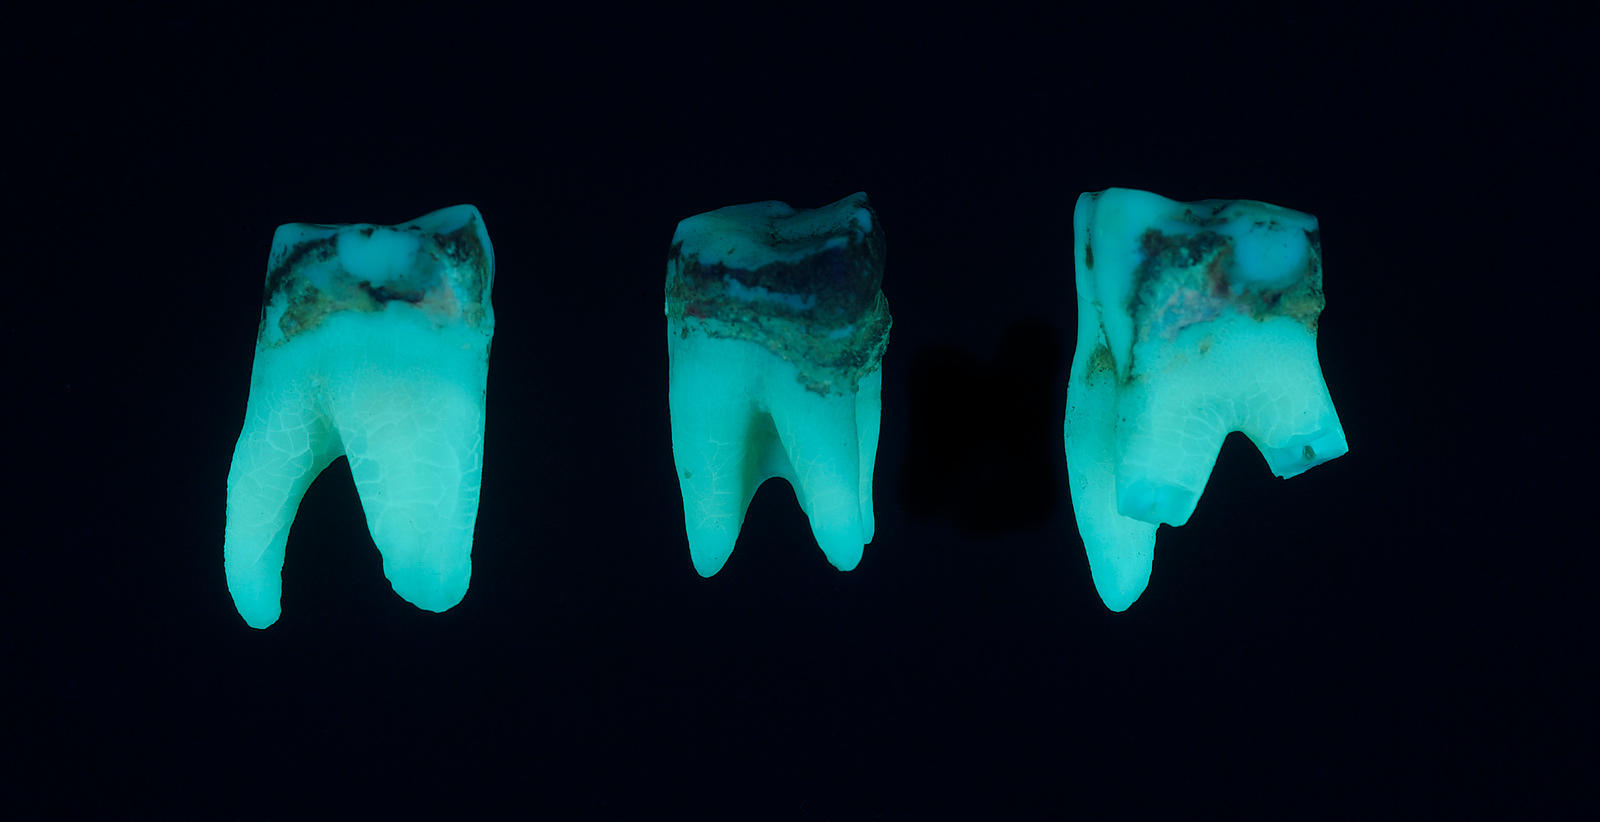 Ultraviolet fluorescence of molar teeth